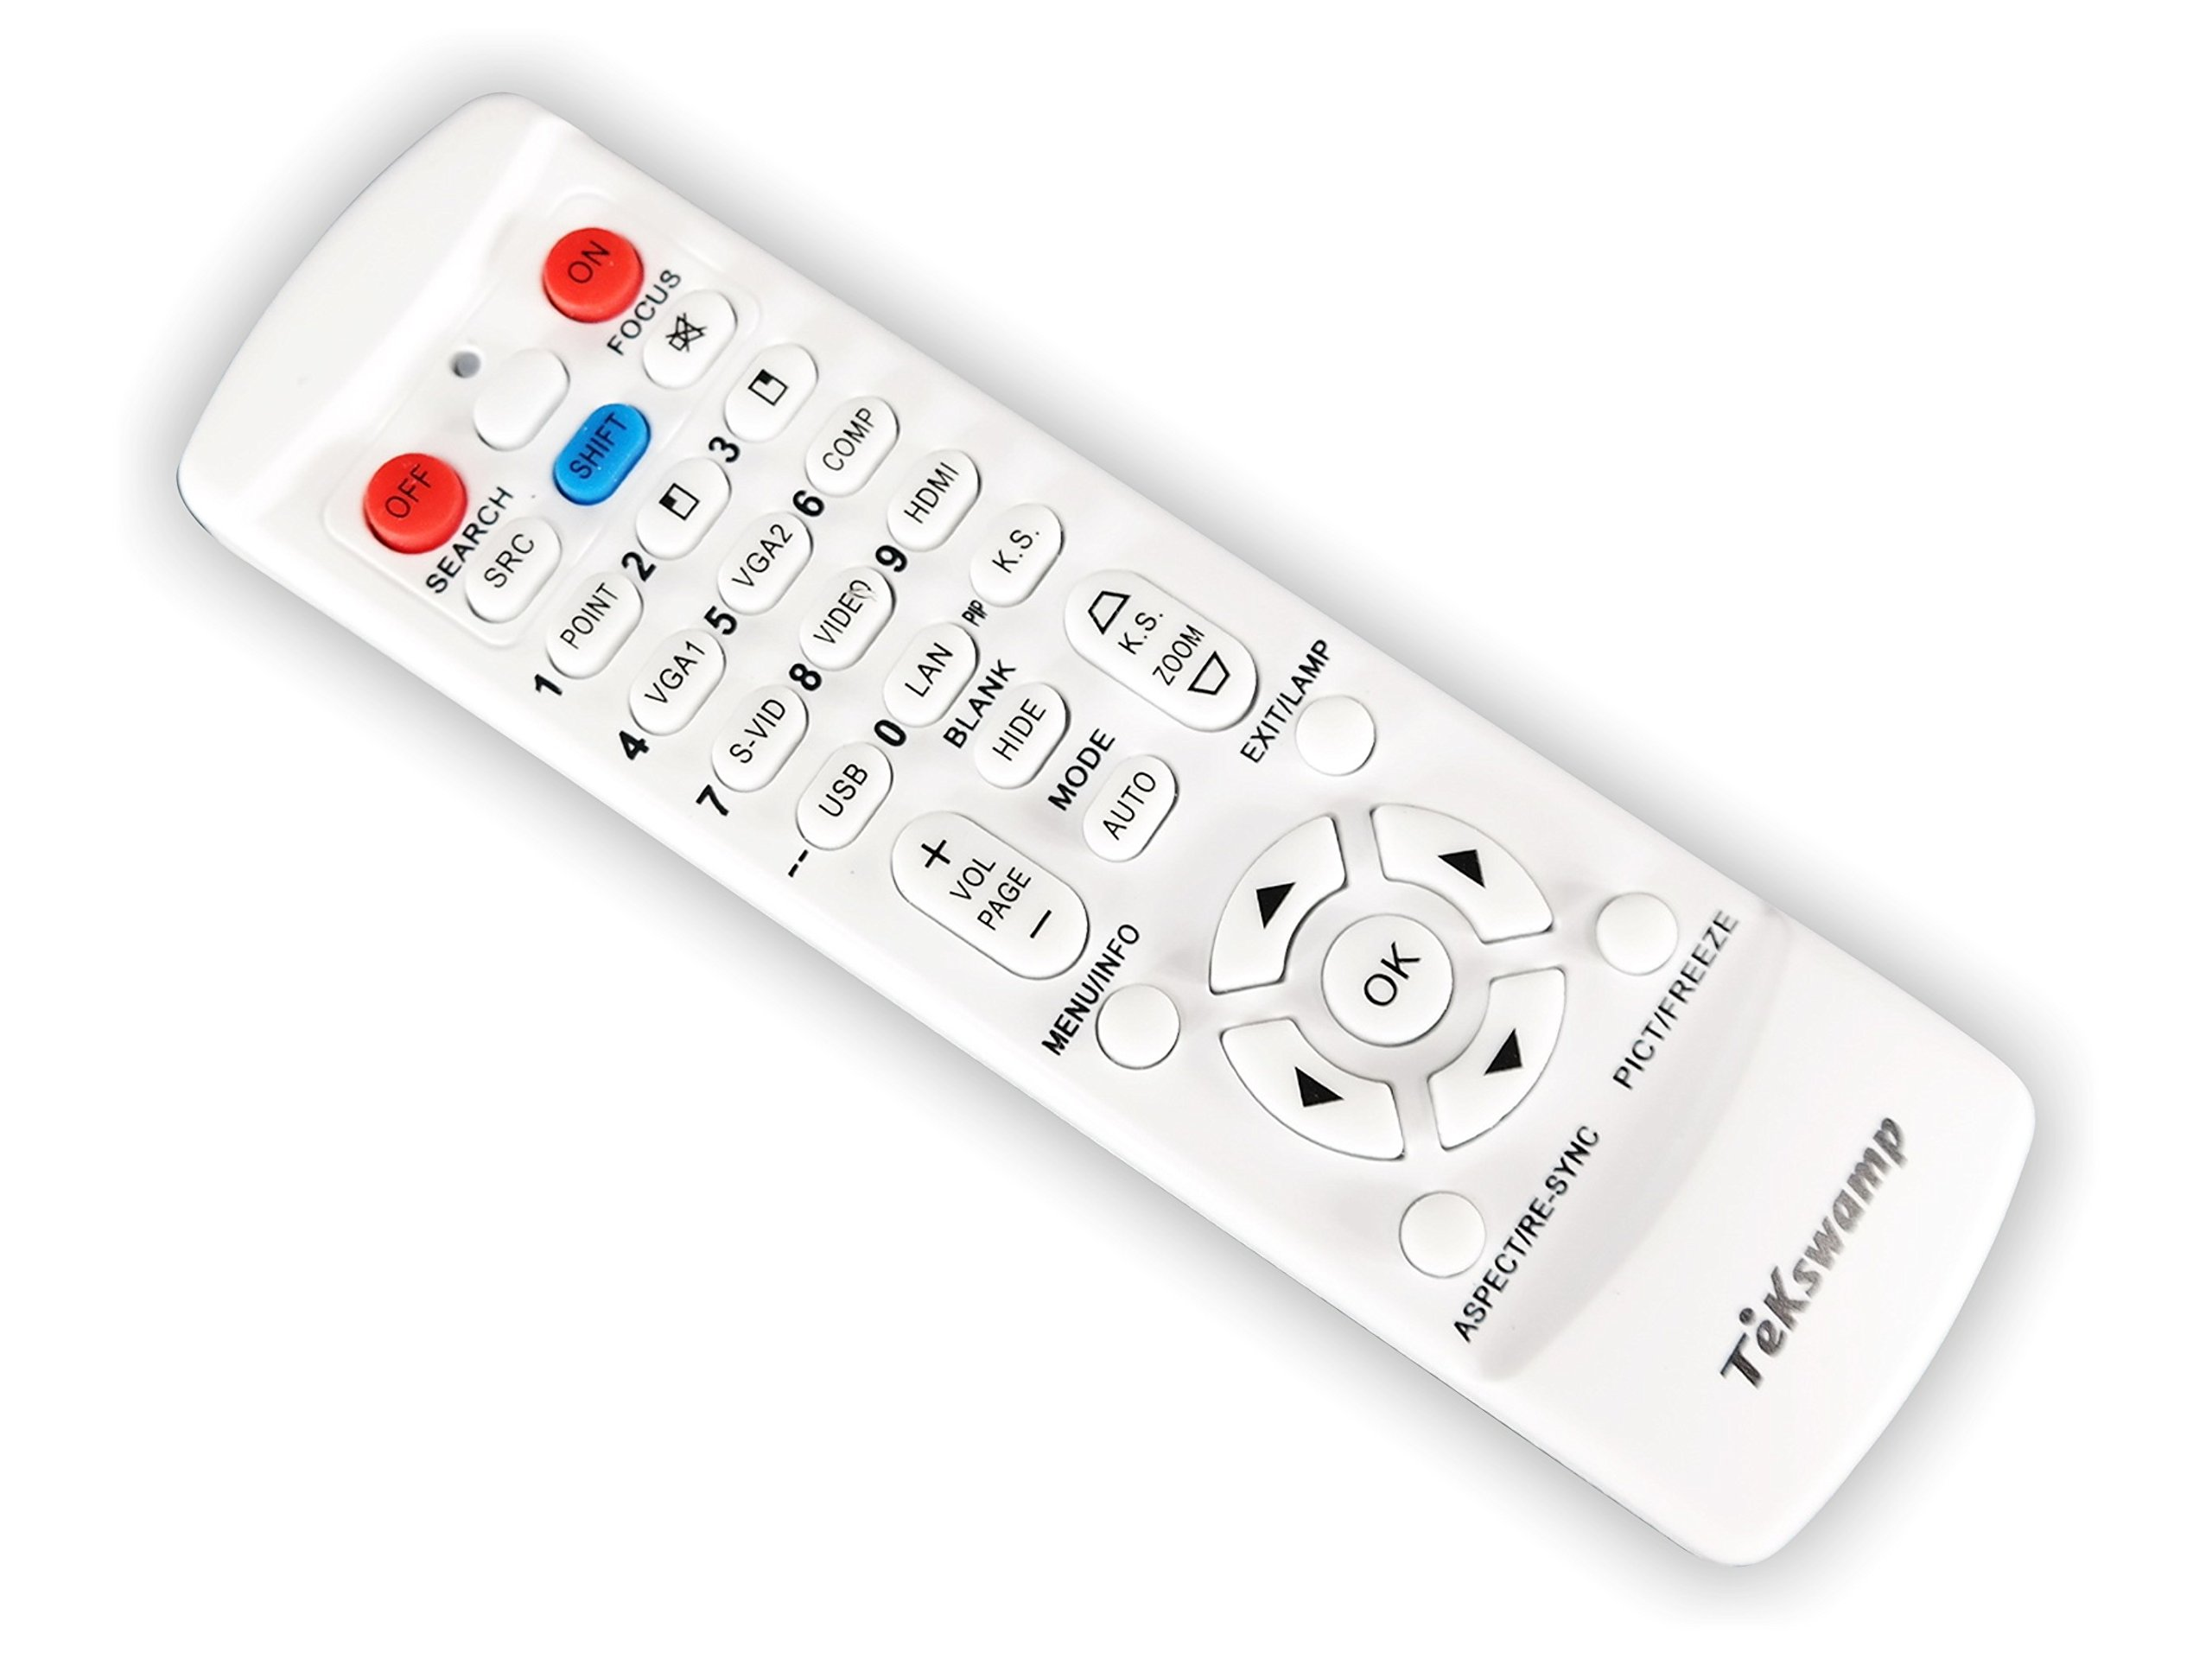 Barco RLM-W8 TeKswamp Video Projector Remote Control (White) by Tekswamp (Image #1)